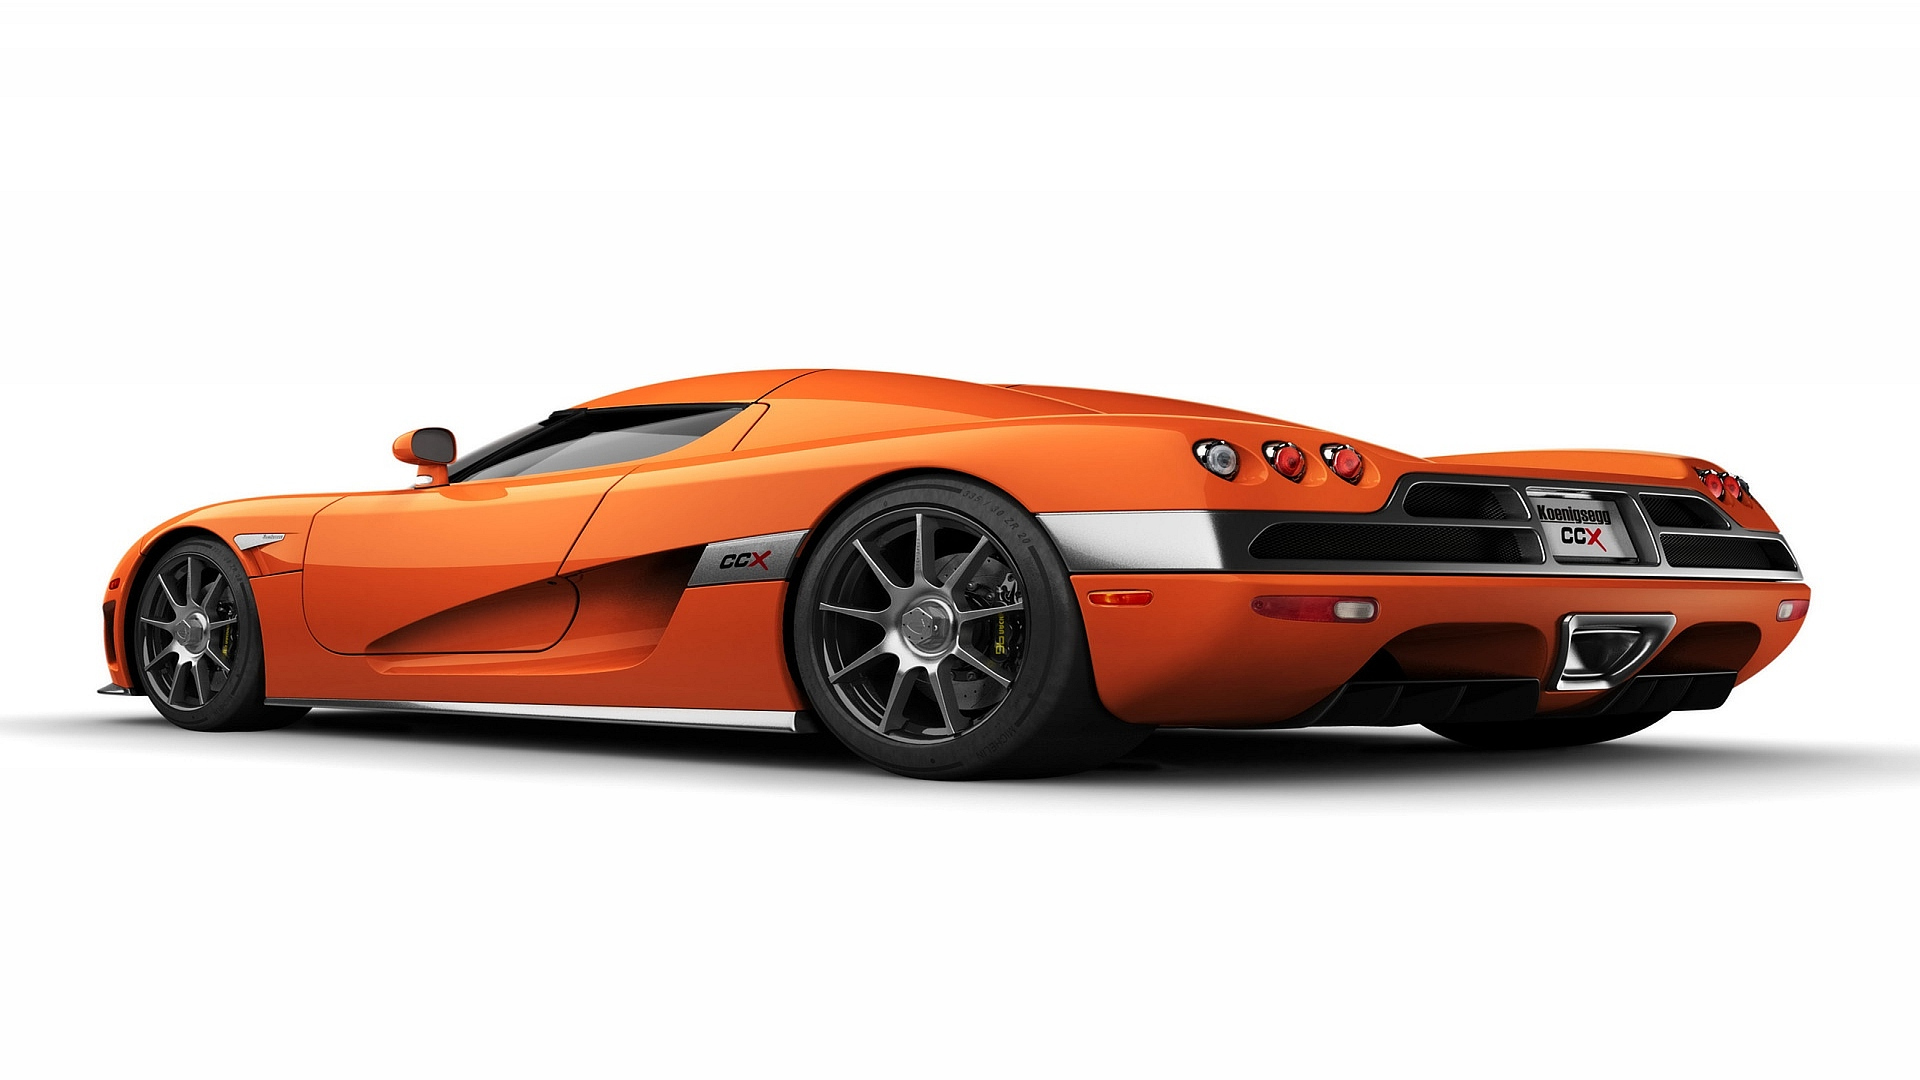 2006 Koenigsegg CCX wallpaper 12241 1920x1080